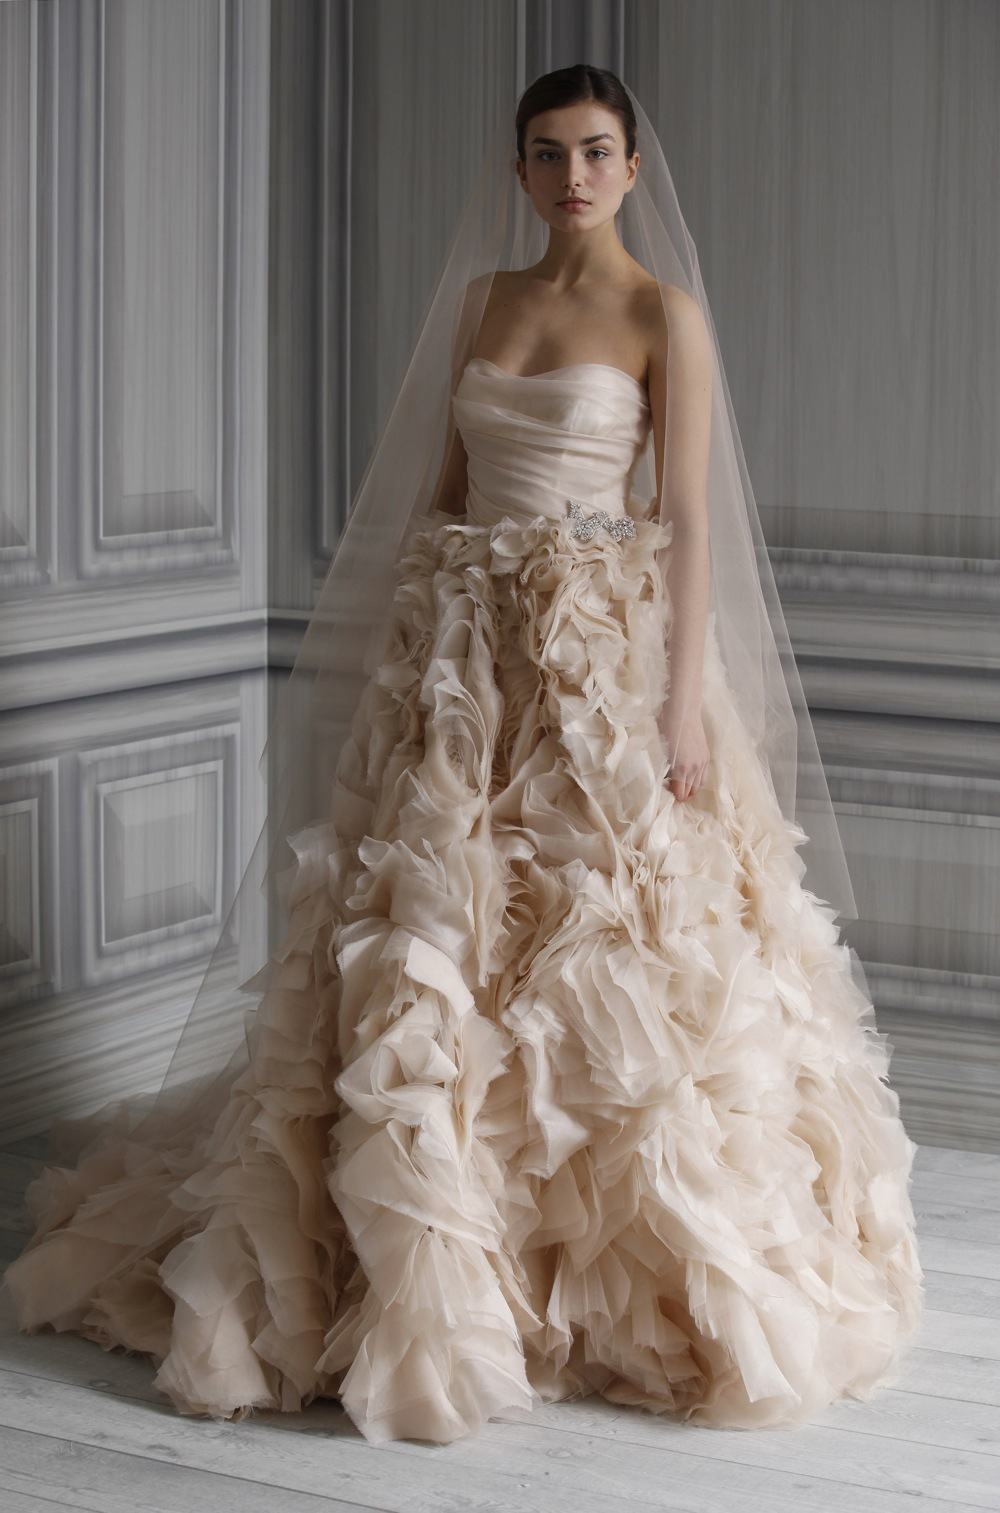 Wedding-dress-monique-lhuillier-bridal-gowns-spring-2012-waltz.full